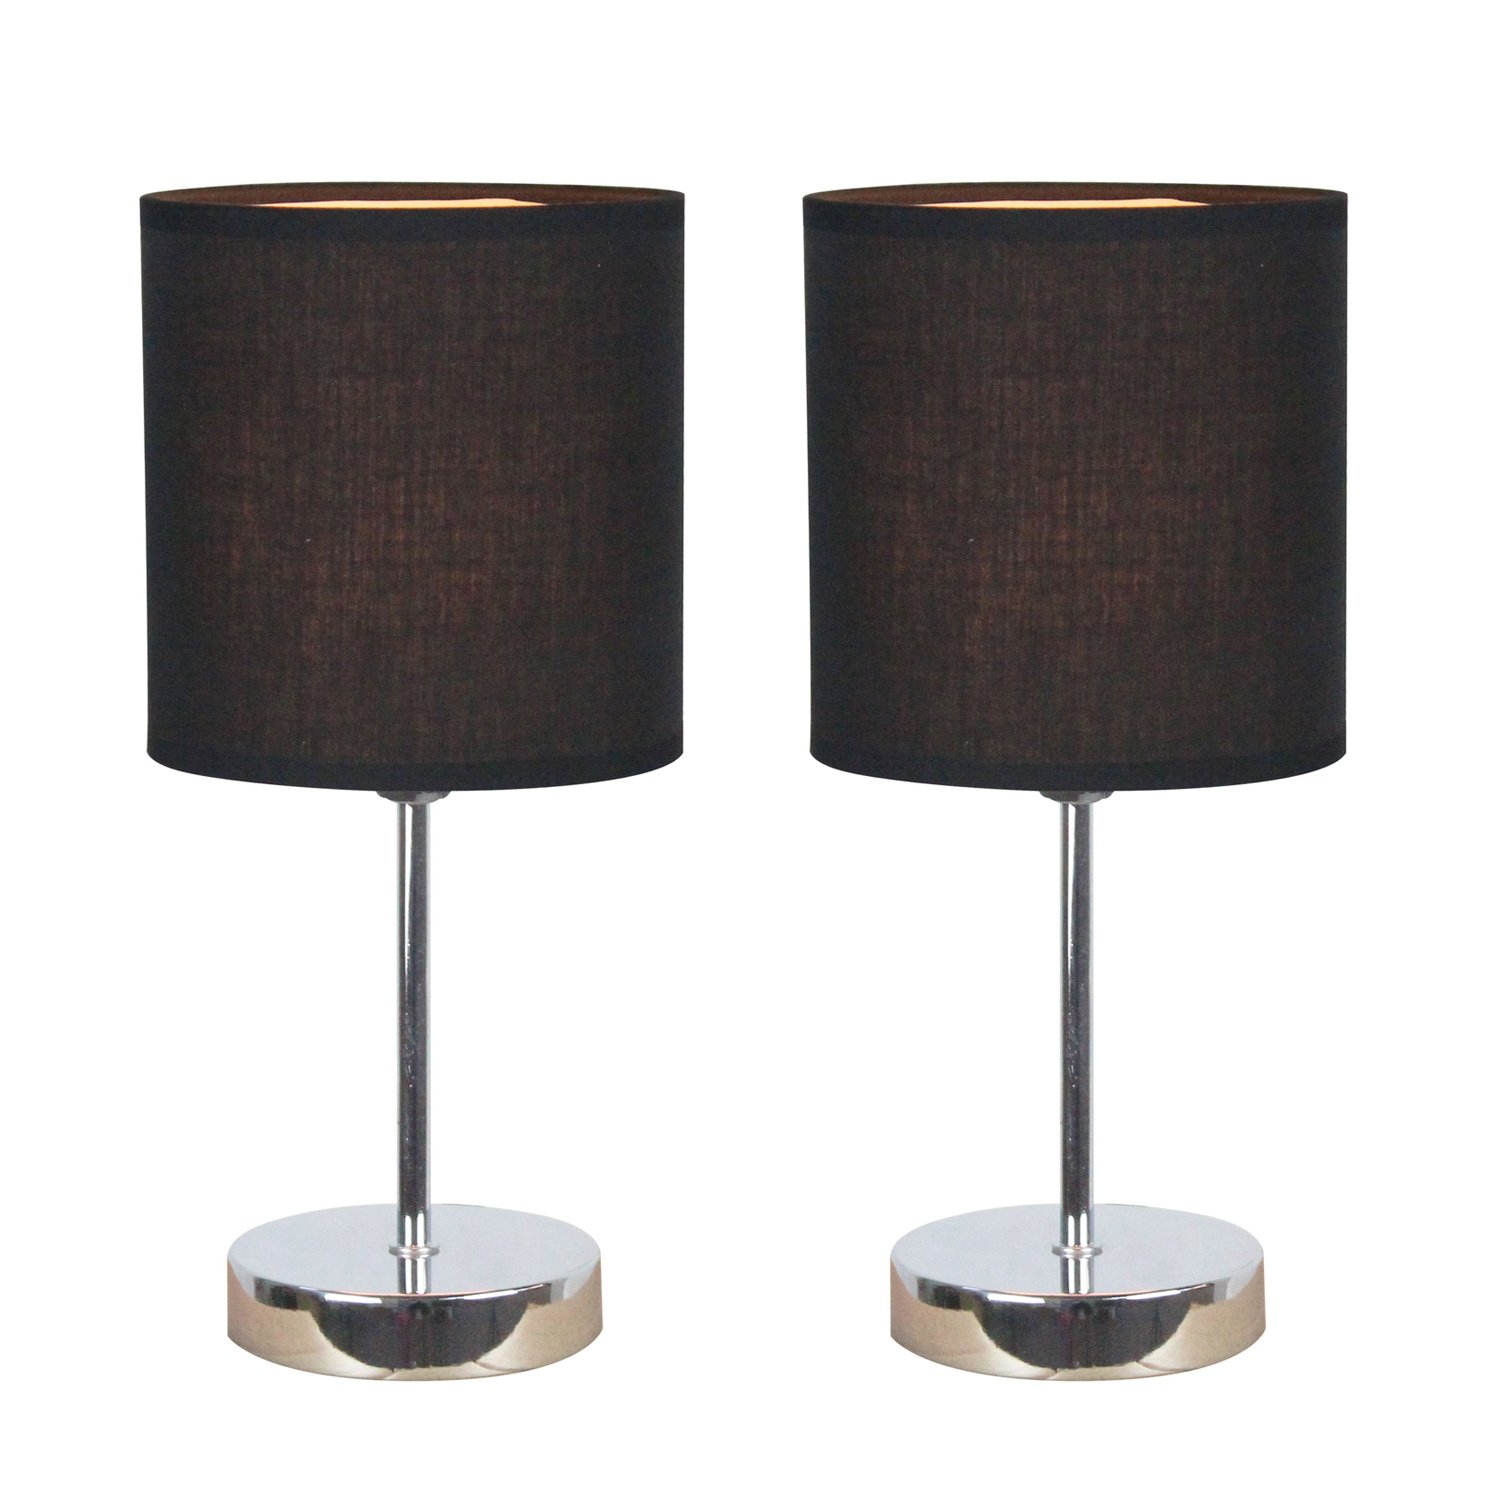 Amazon white floor lamps lamps shades tools - Simple Designs Lt2007 Blk 2pk Chrome Mini Basic Table Lamp 2 Pack Set With